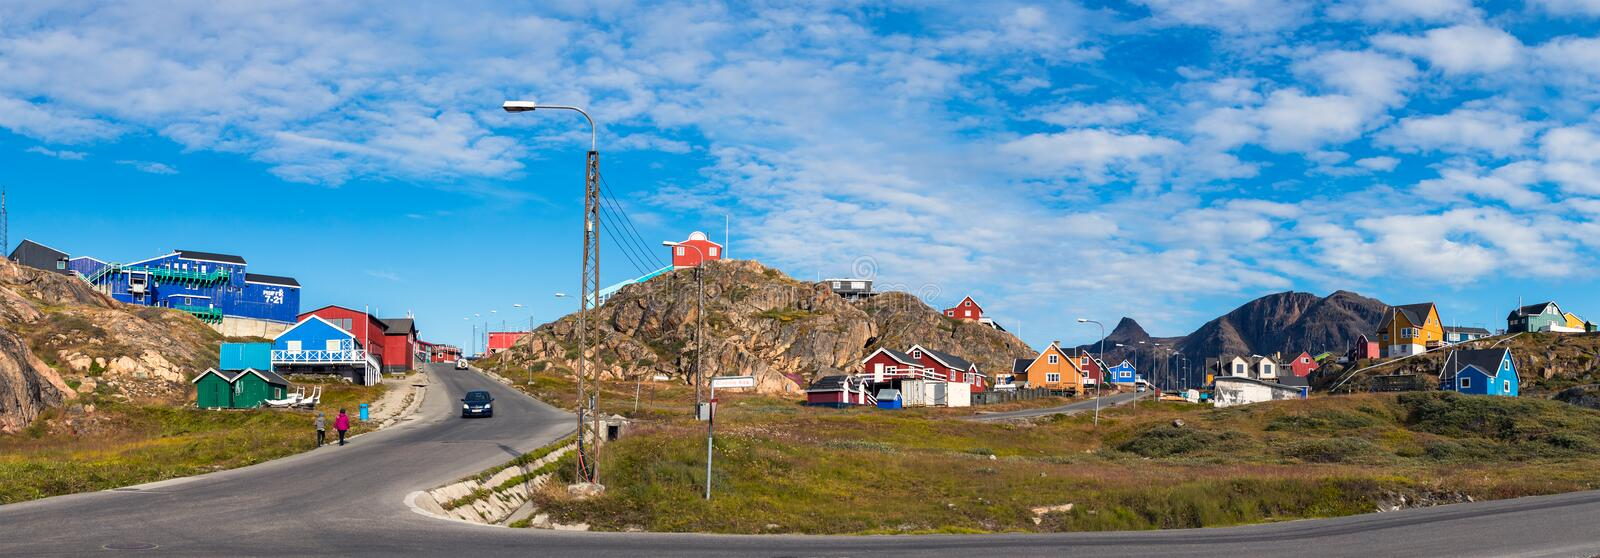 Panorama of Colorful building and houses in Sisimiut, Greenland. stock photo